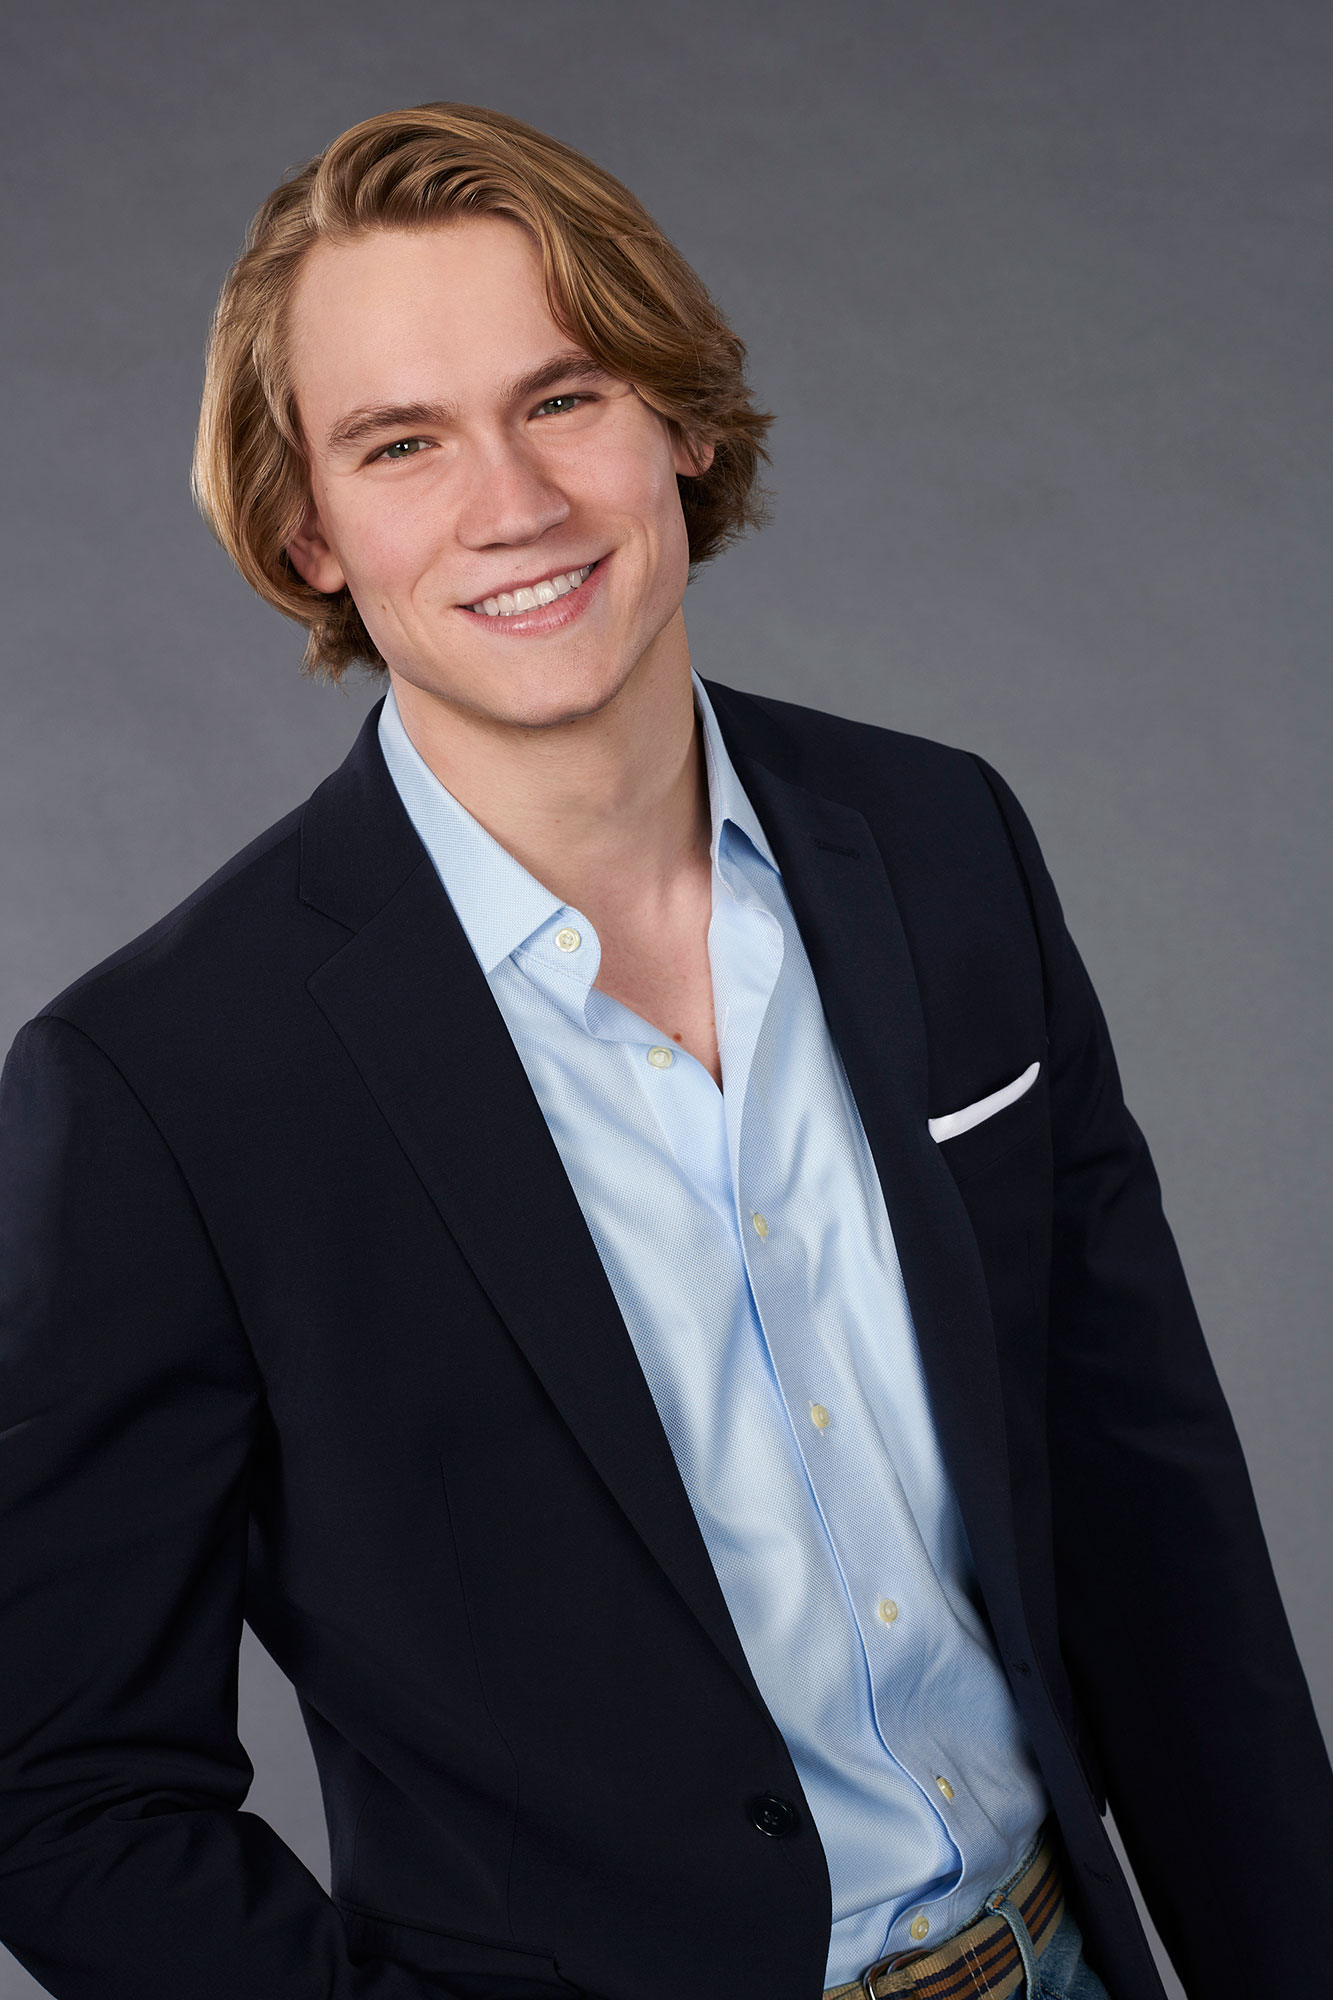 """'The Bachelorette' Season 15: 11 Strangest Revelations From Hannah Brown's Suitors' Bios - The 24-year-old prefers to be called his full name, John Paul Jones, and """"rarely uses words that are less than three syllables long."""""""